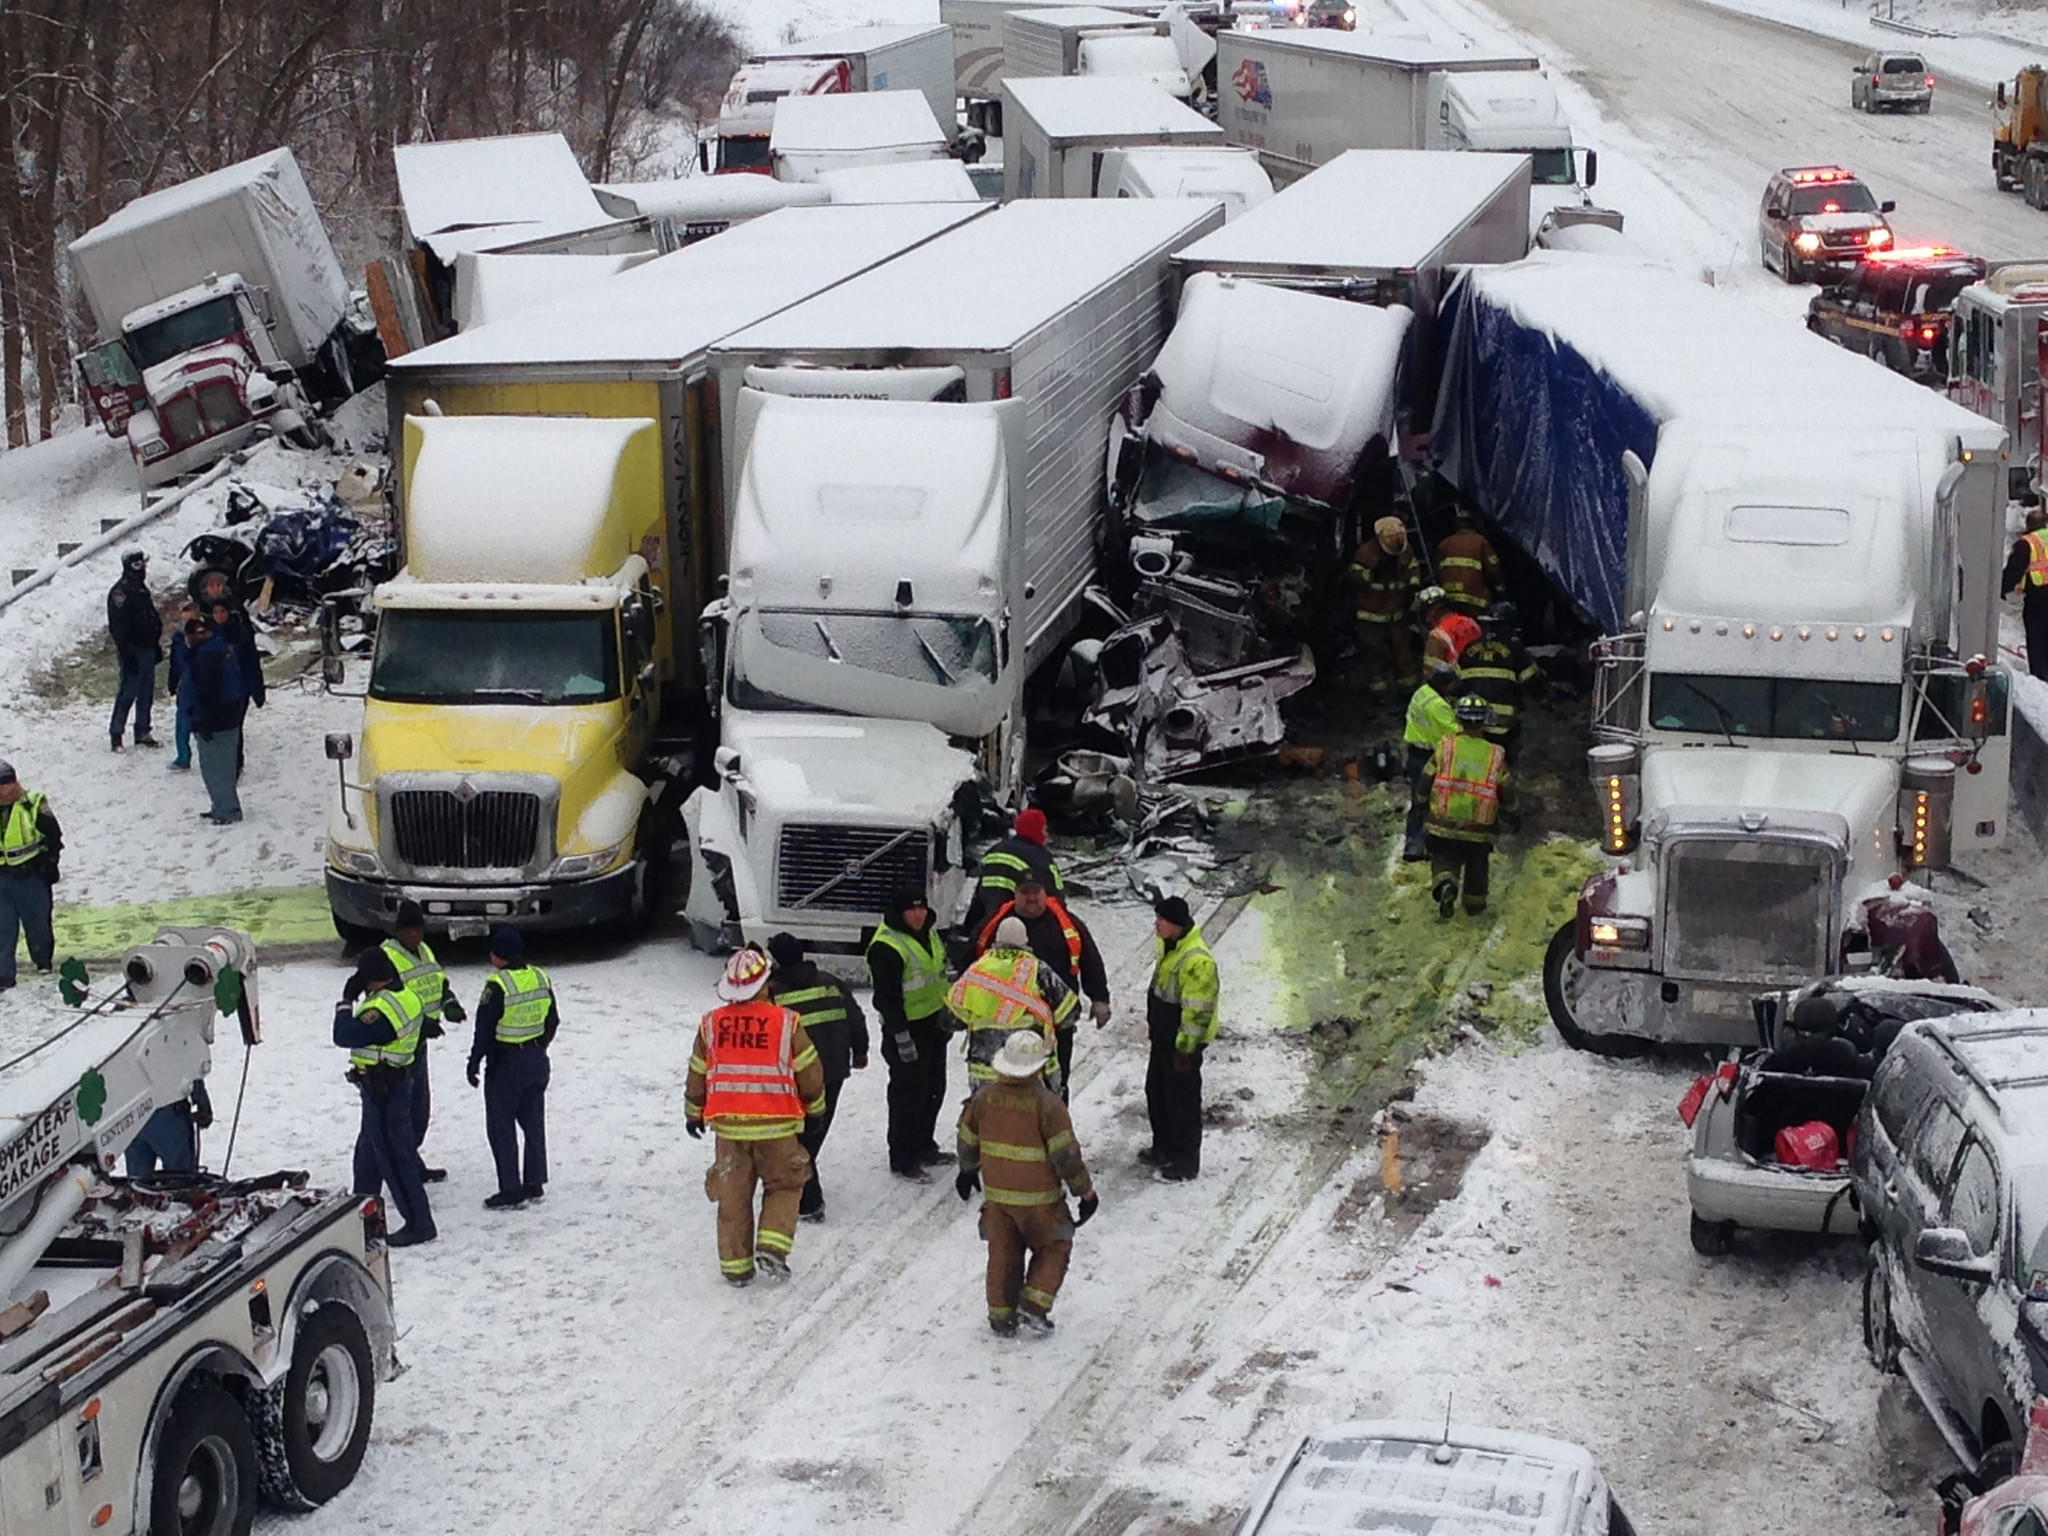 Authorities investigate a multi-vehicle accident on I-94 east of State Road 49 near Chesterton, Ind. Thursday, January 23, 2014. Three people died and at least 20 were injured.